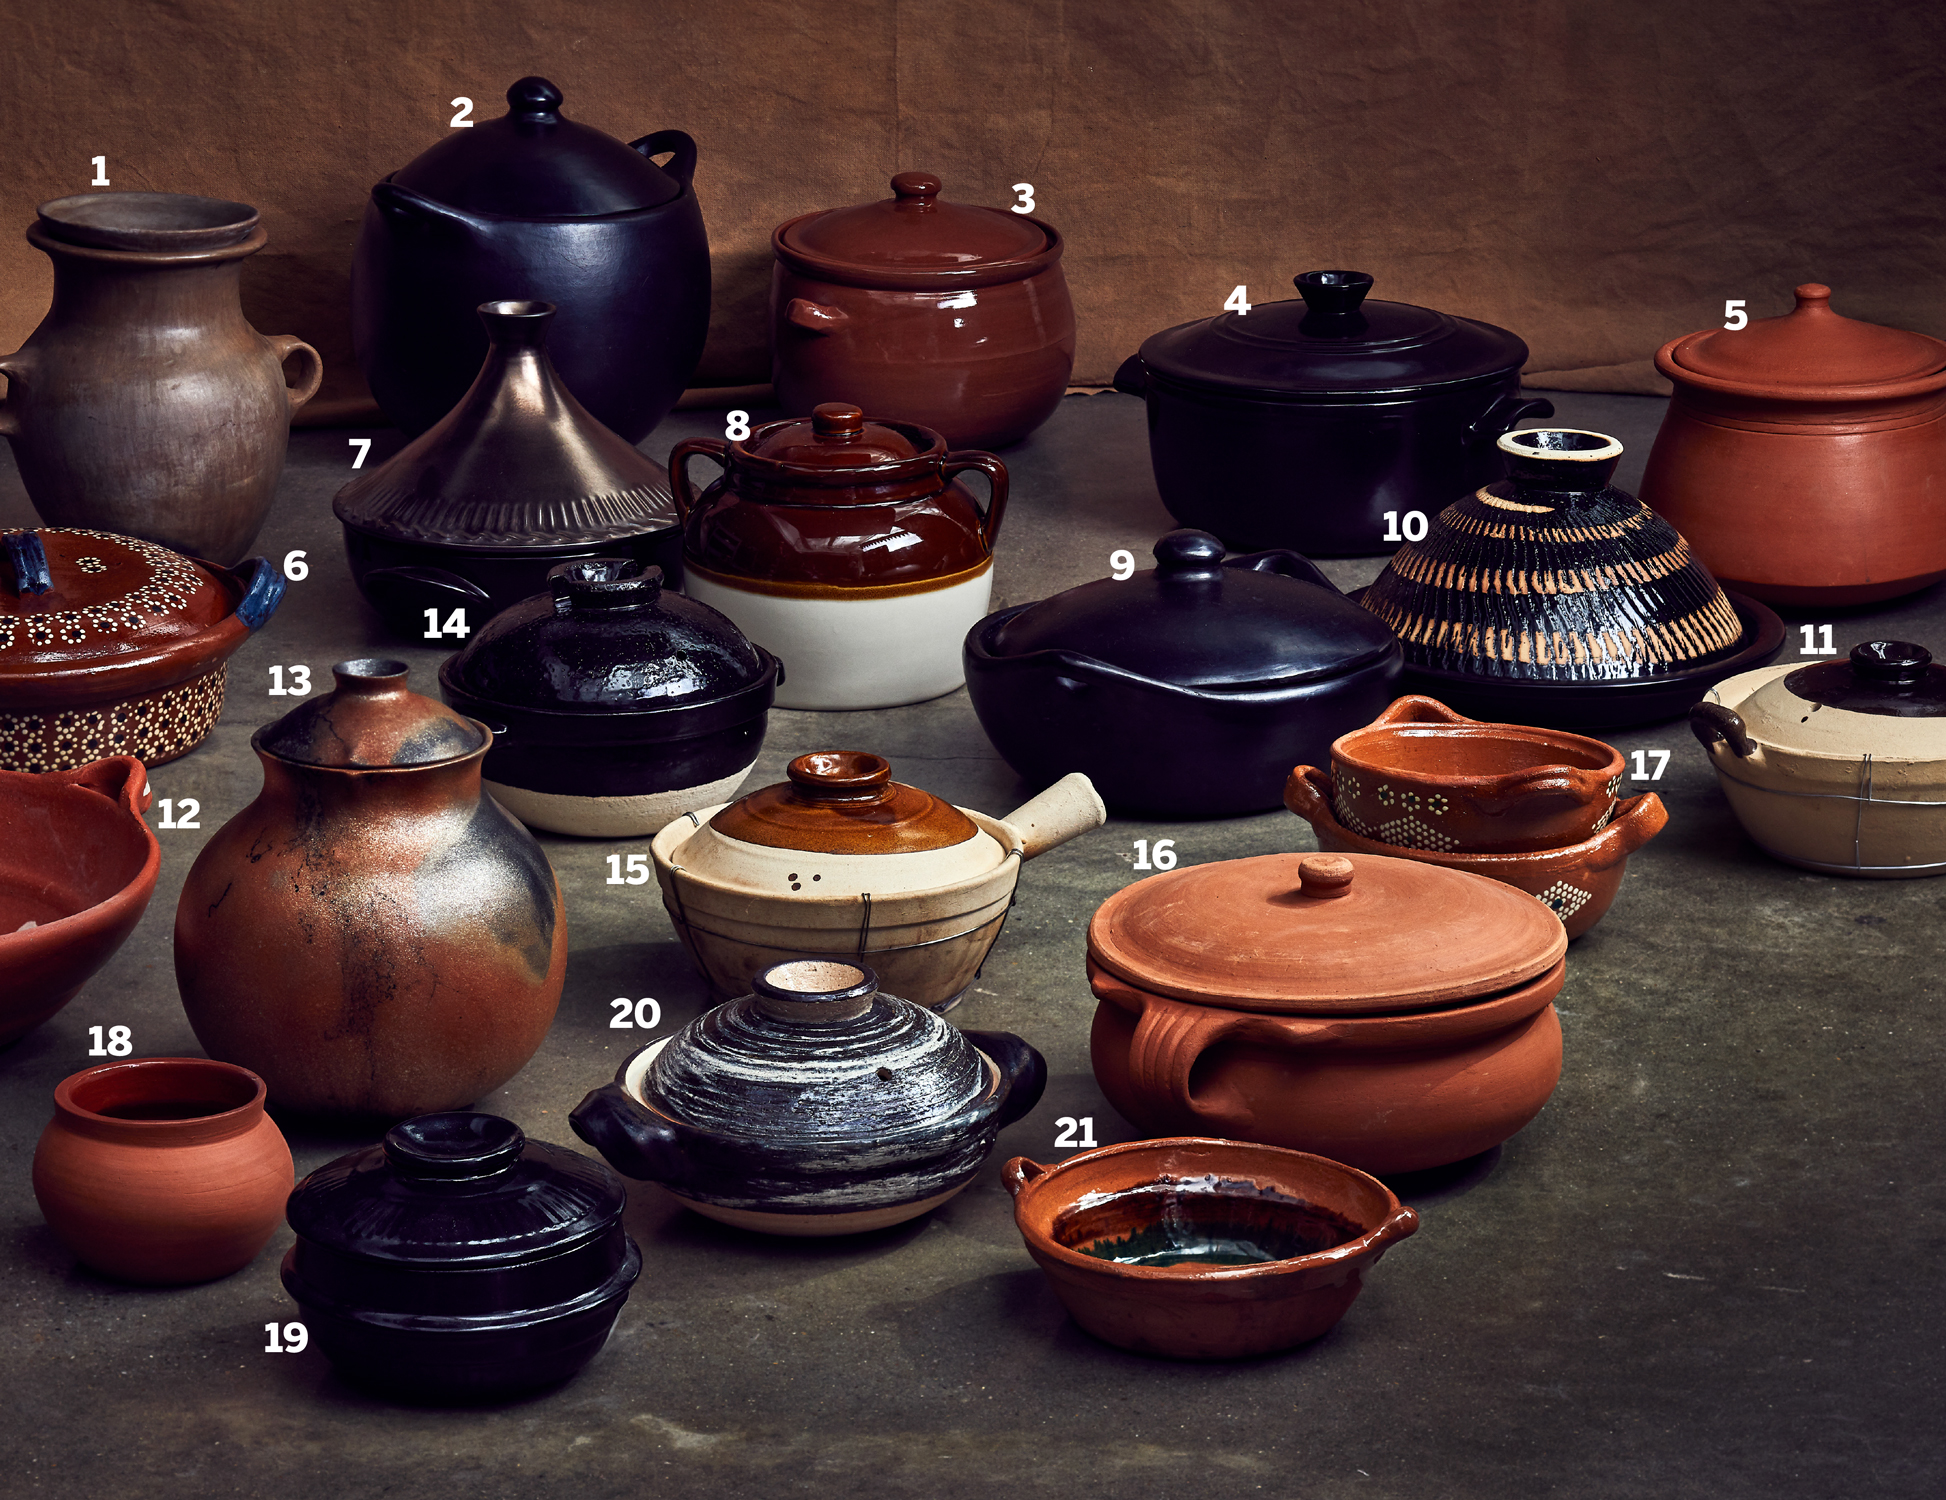 How to get started with clay pot cooking